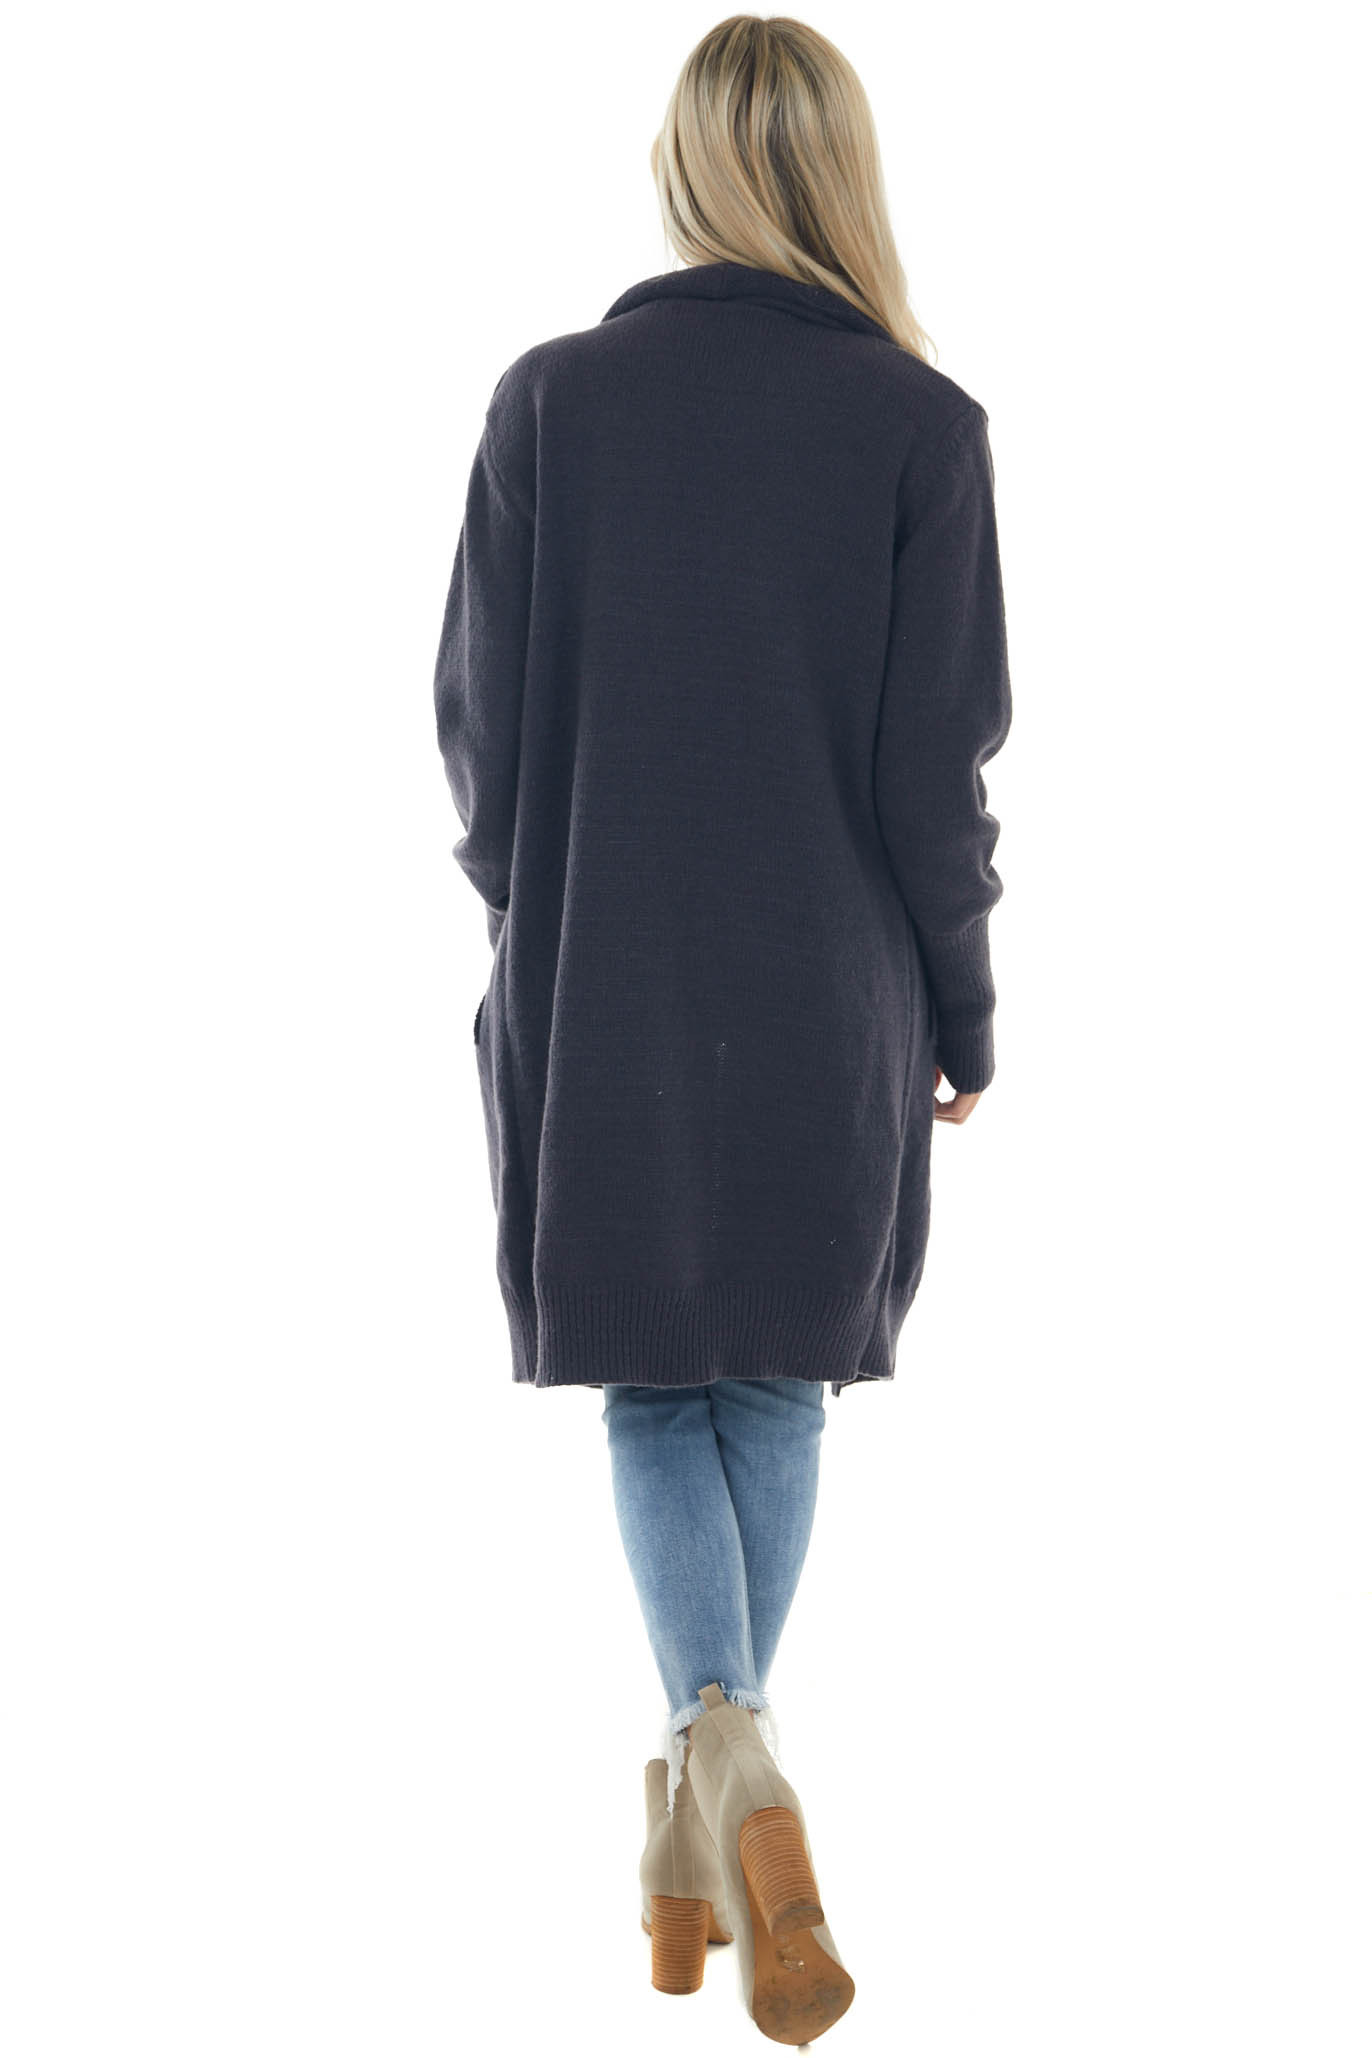 Charcoal Lapel Duster Cardigan with Pockets